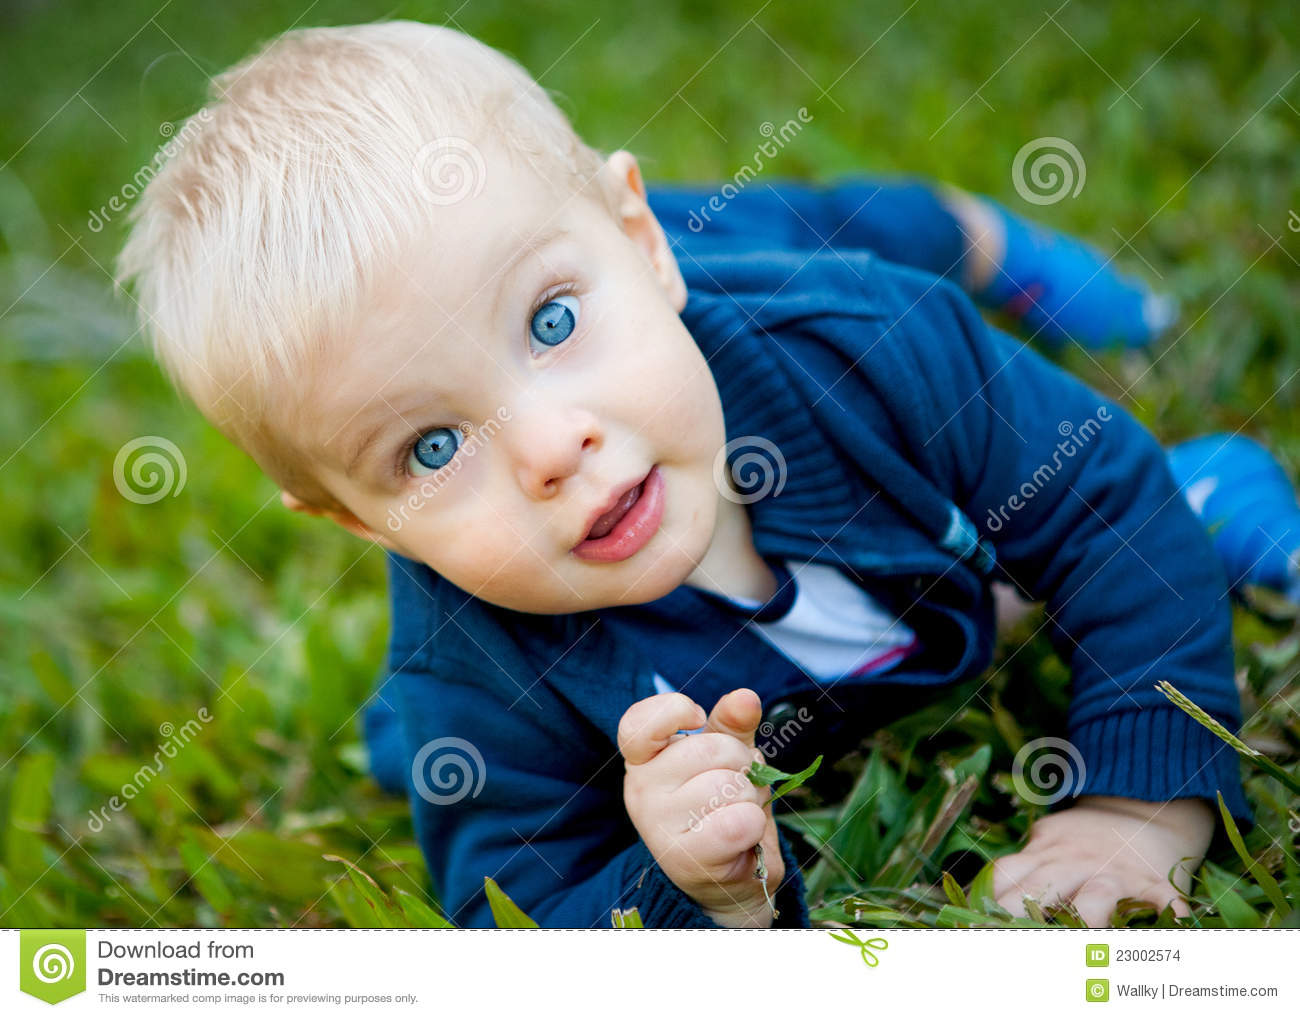 A Adorable Baby Boy On The Green Grass Stock Images